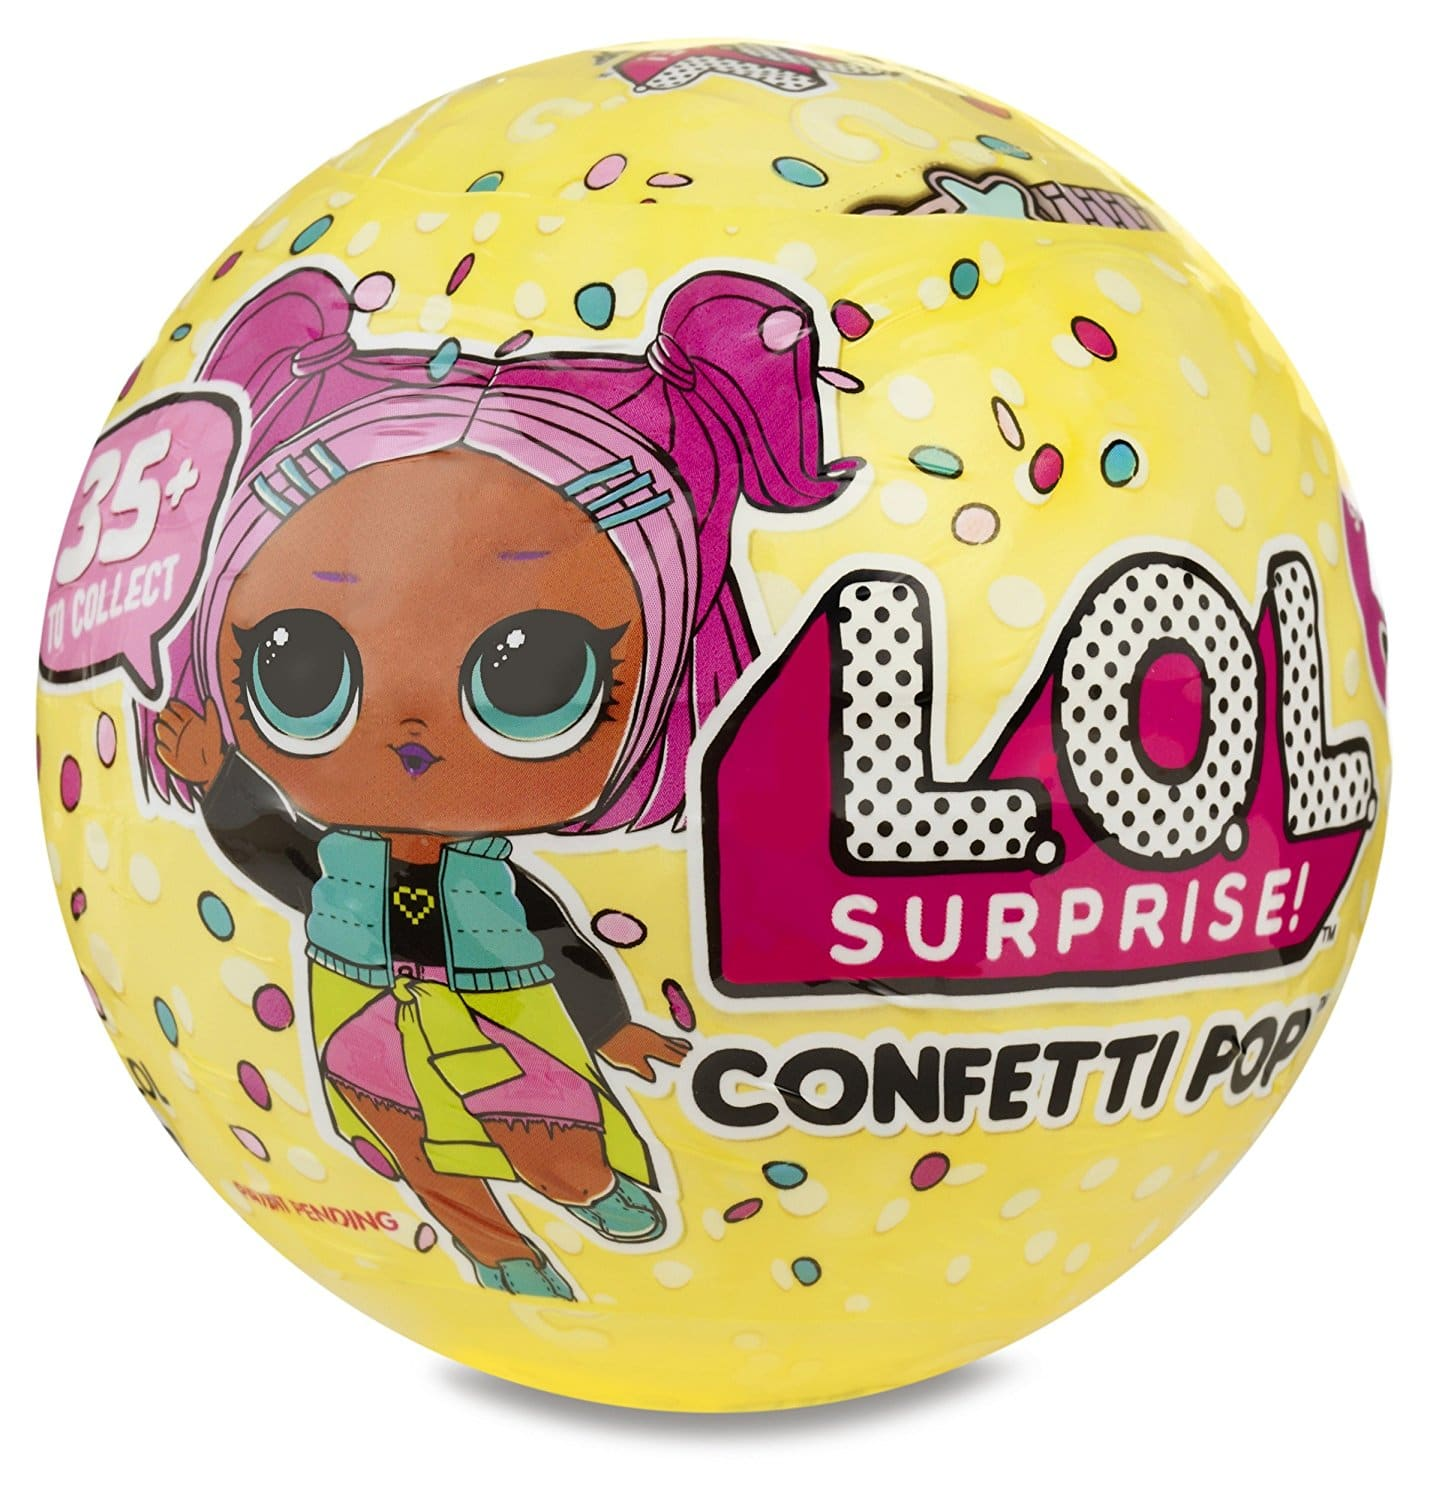 LOL Surprise Confetti Pop Doll - Back in stock at Amazon for $12.99